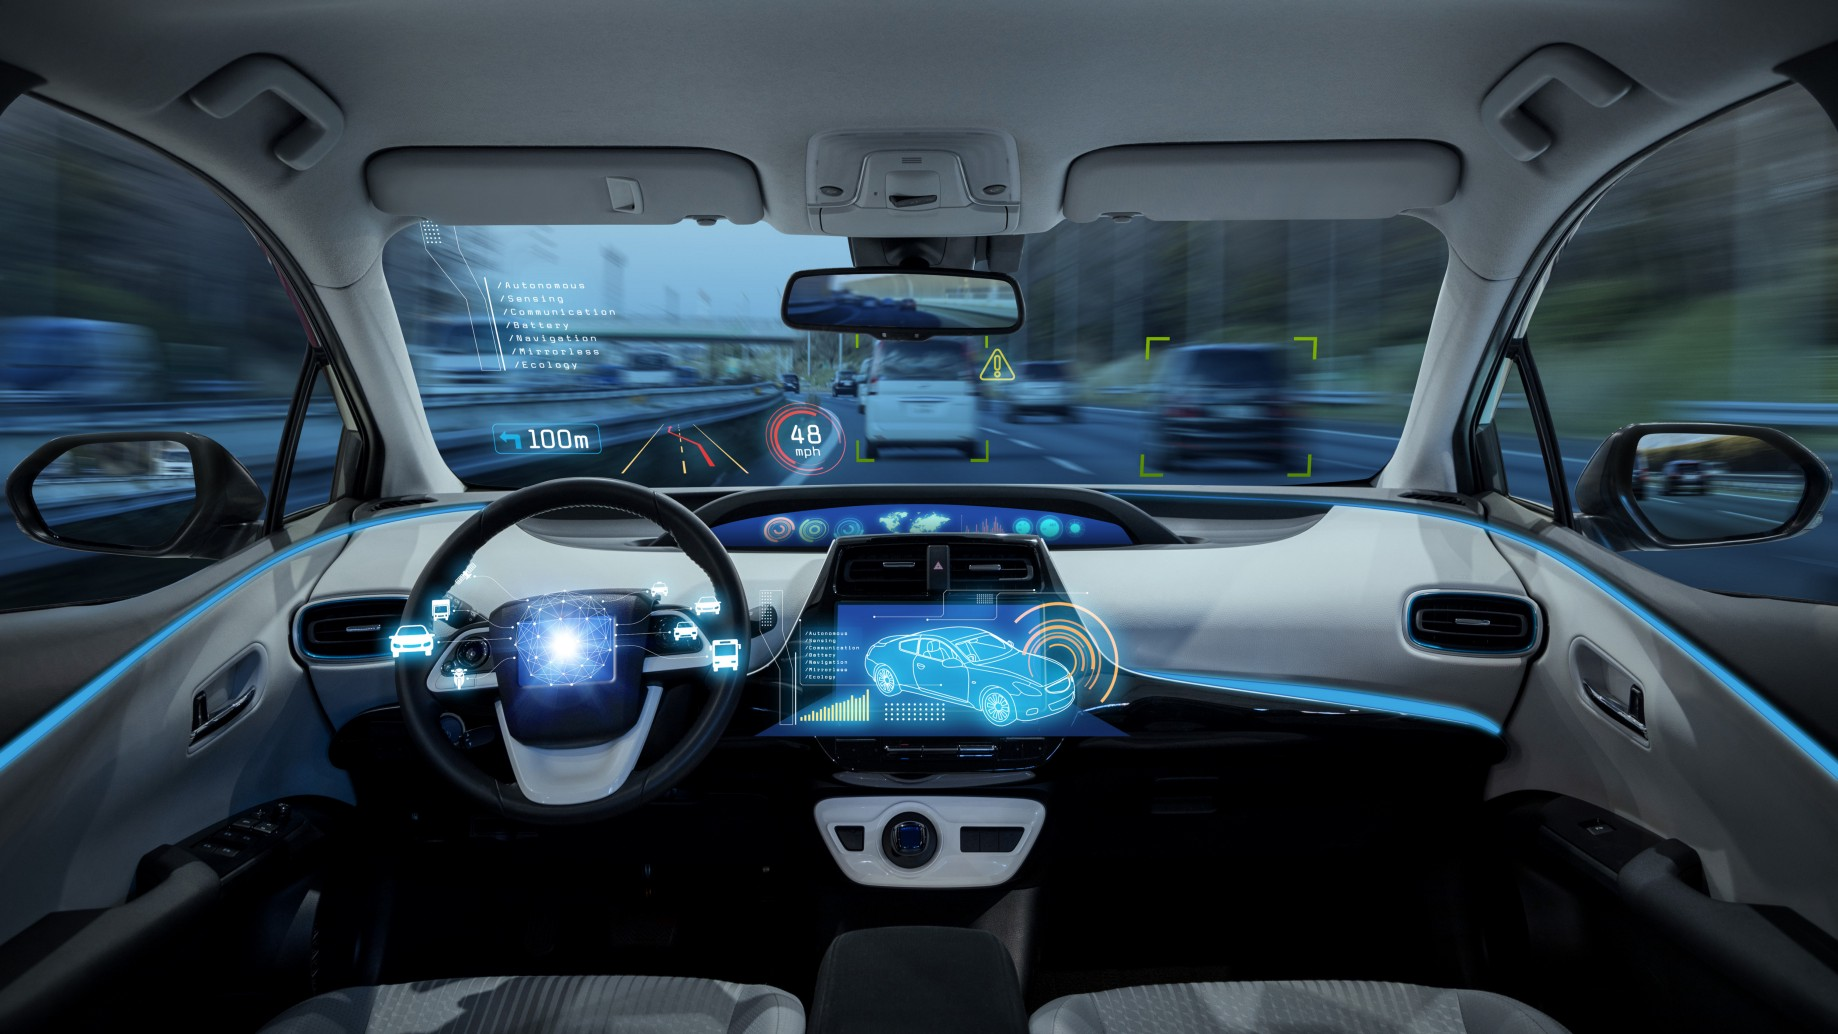 The future of transportation: How AI is helping vehicles think